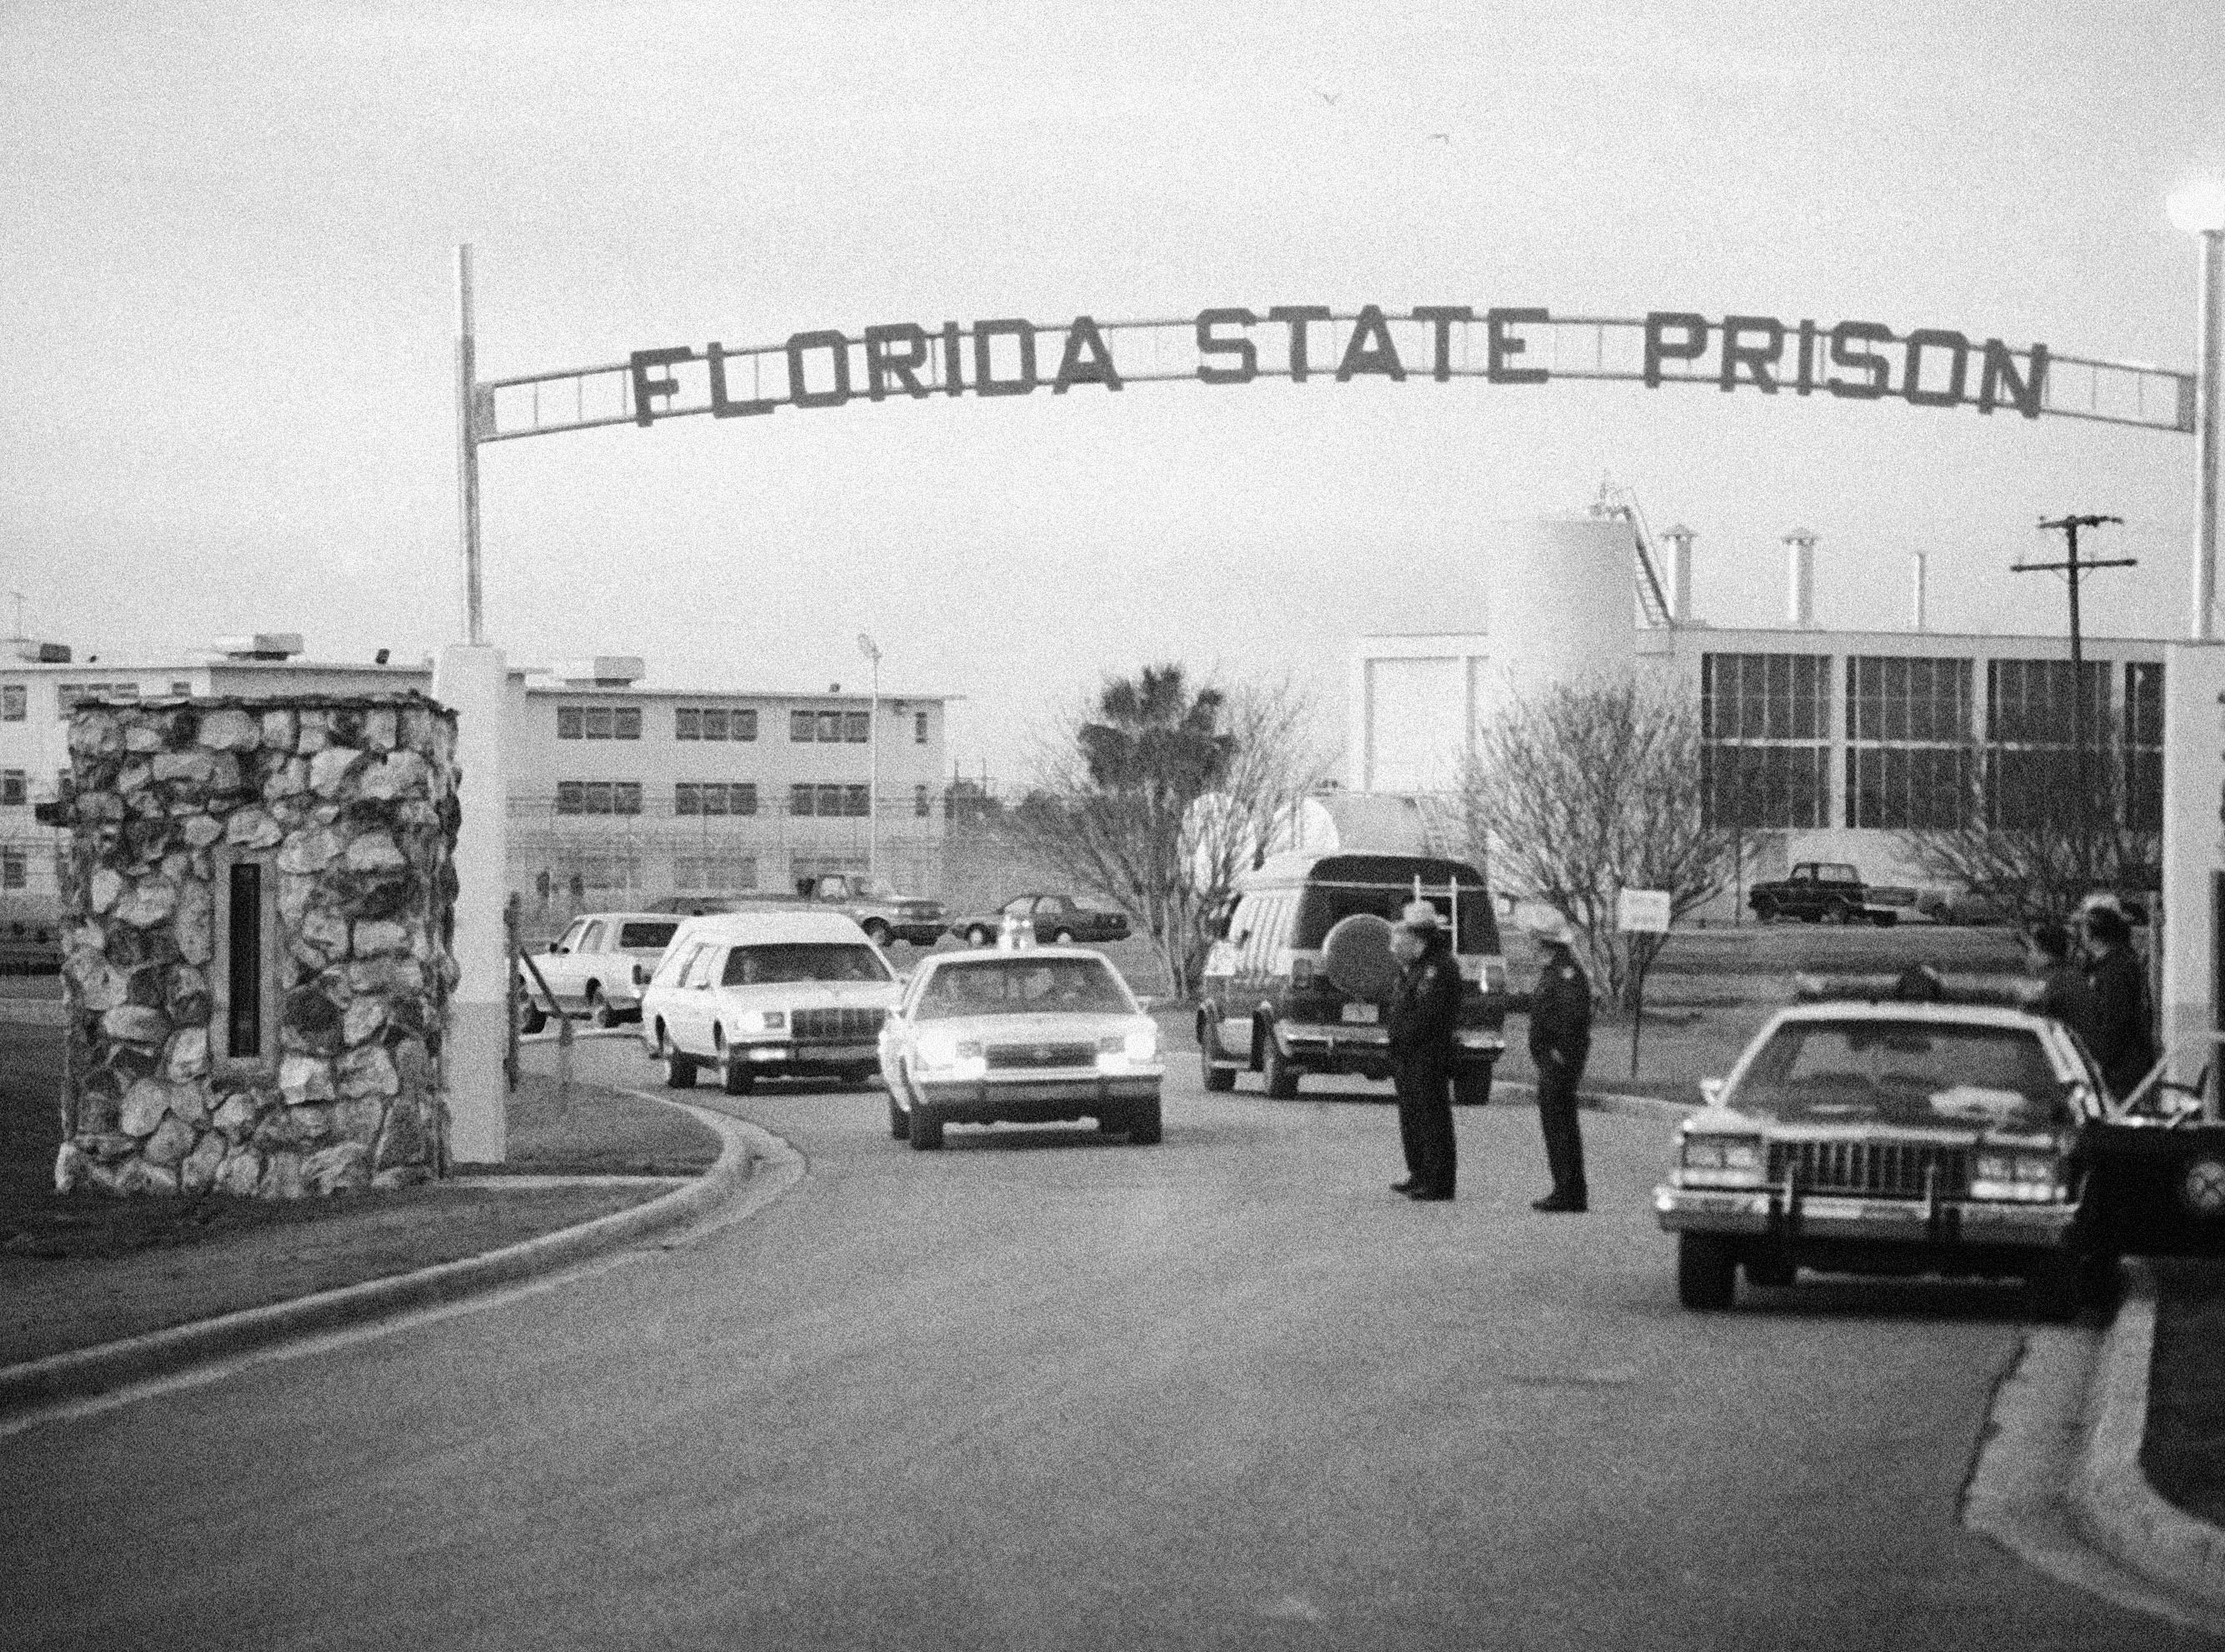 A white hearse leaves Florida State Prison containing the body of Theodore Bundy who was electrocuted in Florida's electric chair, Tuesday, Jan. 24, 1989, Starke, Fla.